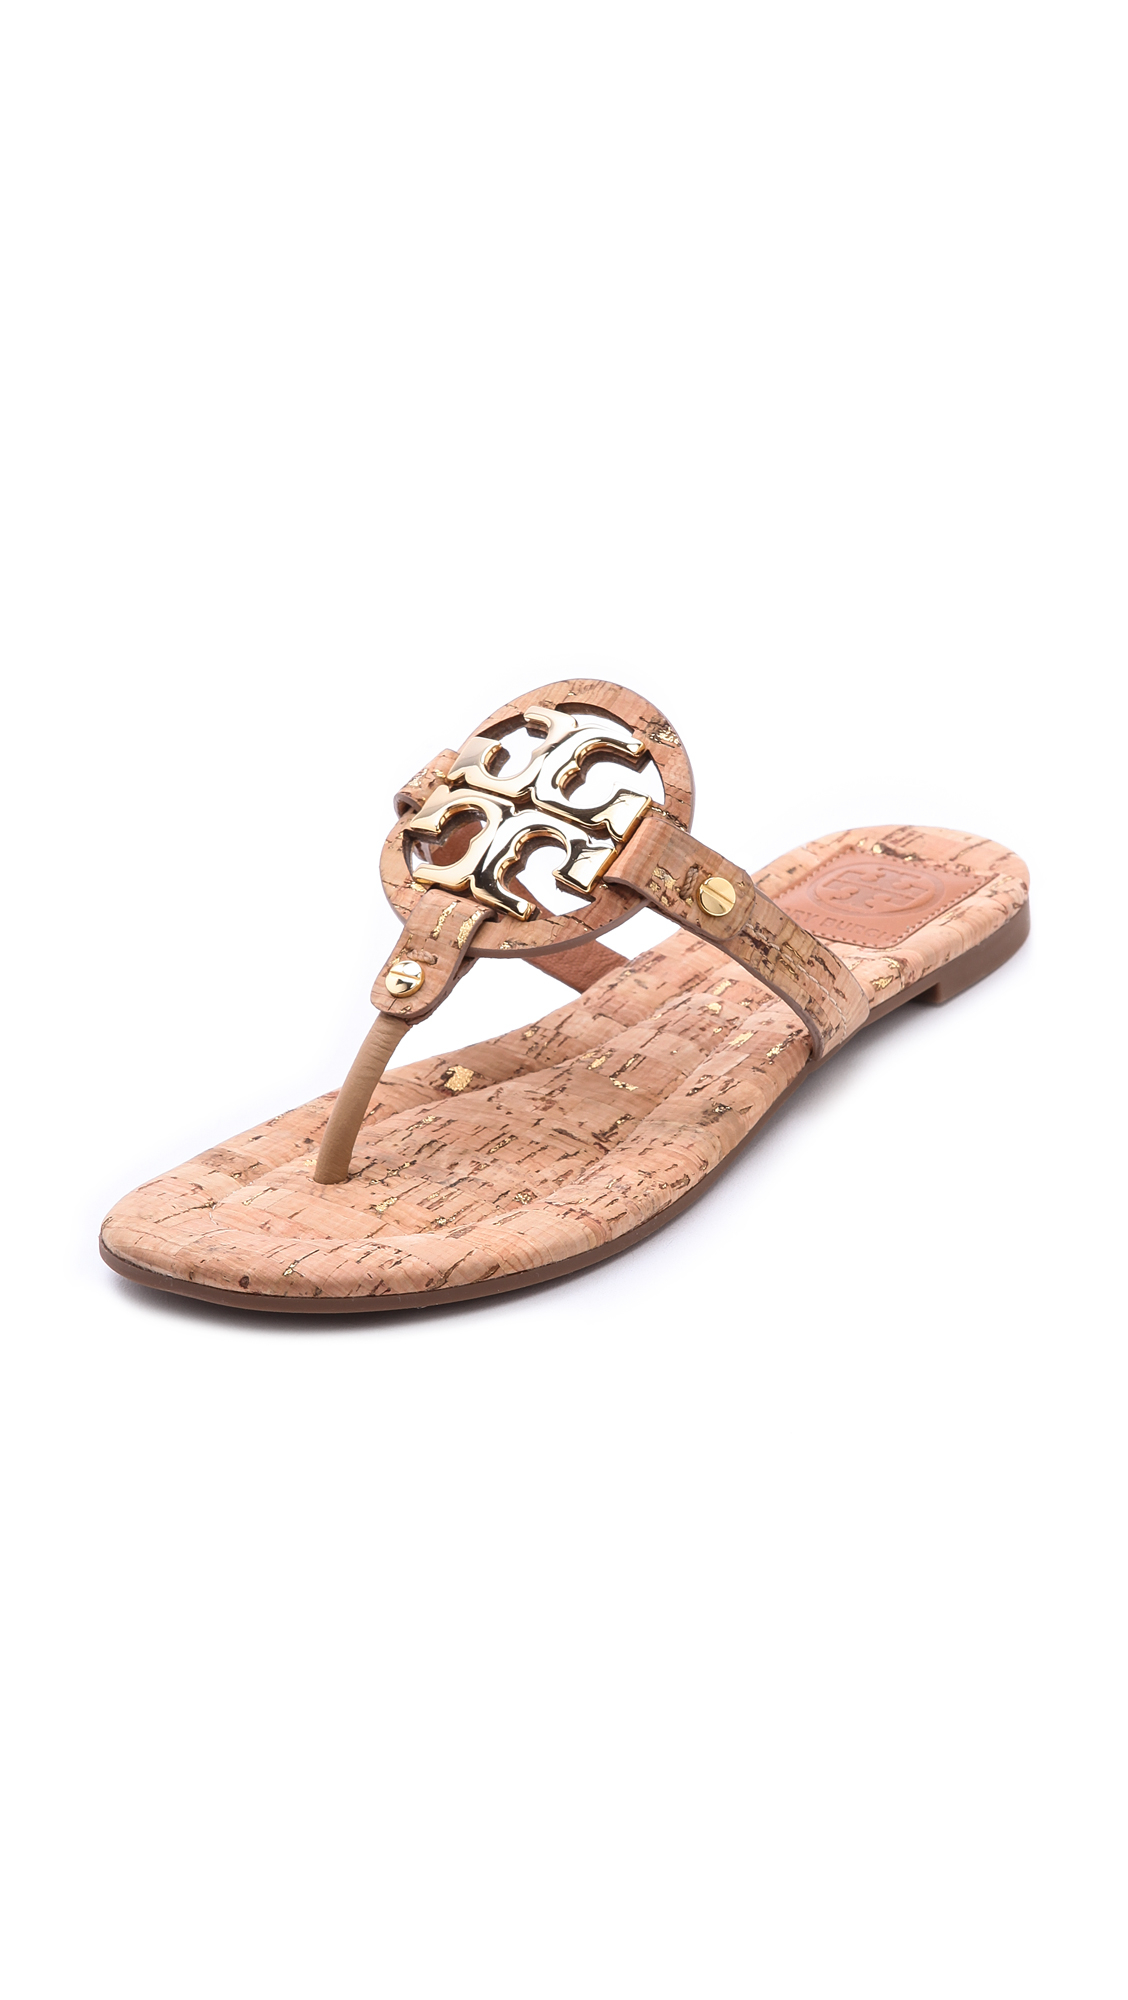 4af2c927e7e62 Lyst - Tory Burch Miller 2 Cork Sandals - Natural gold gold in Metallic